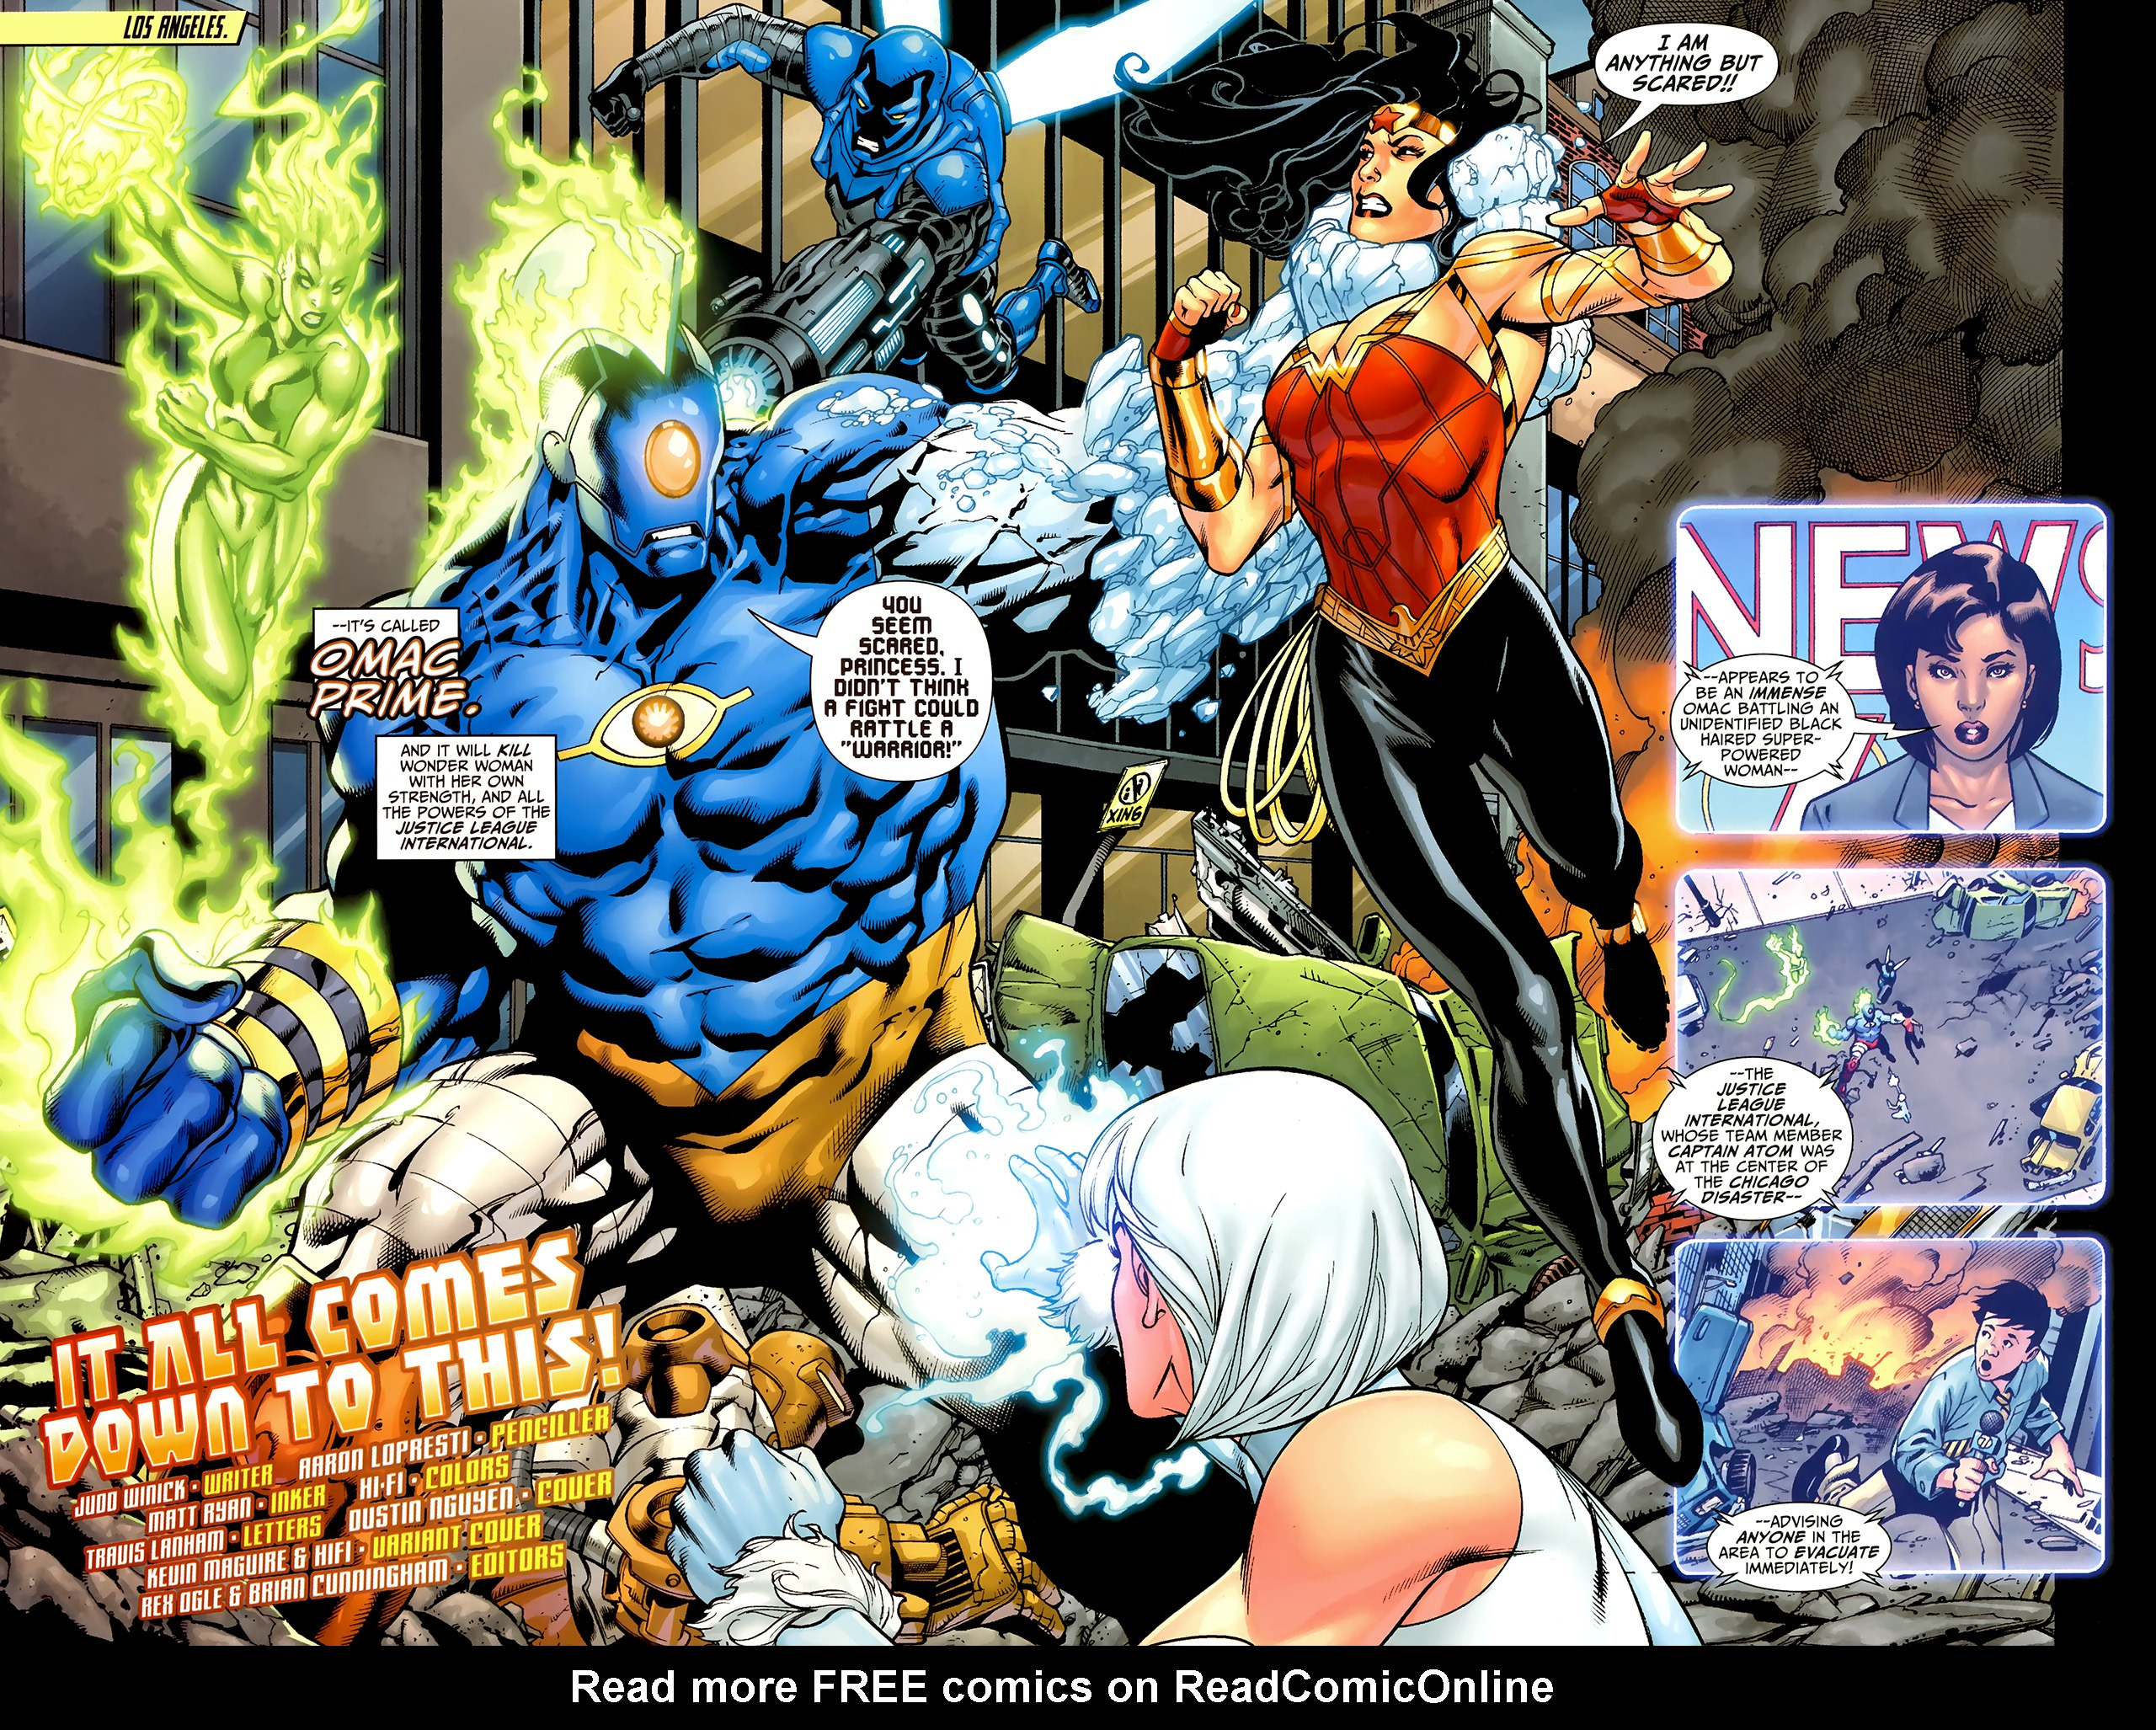 Read online Justice League: Generation Lost comic -  Issue #24 - 4